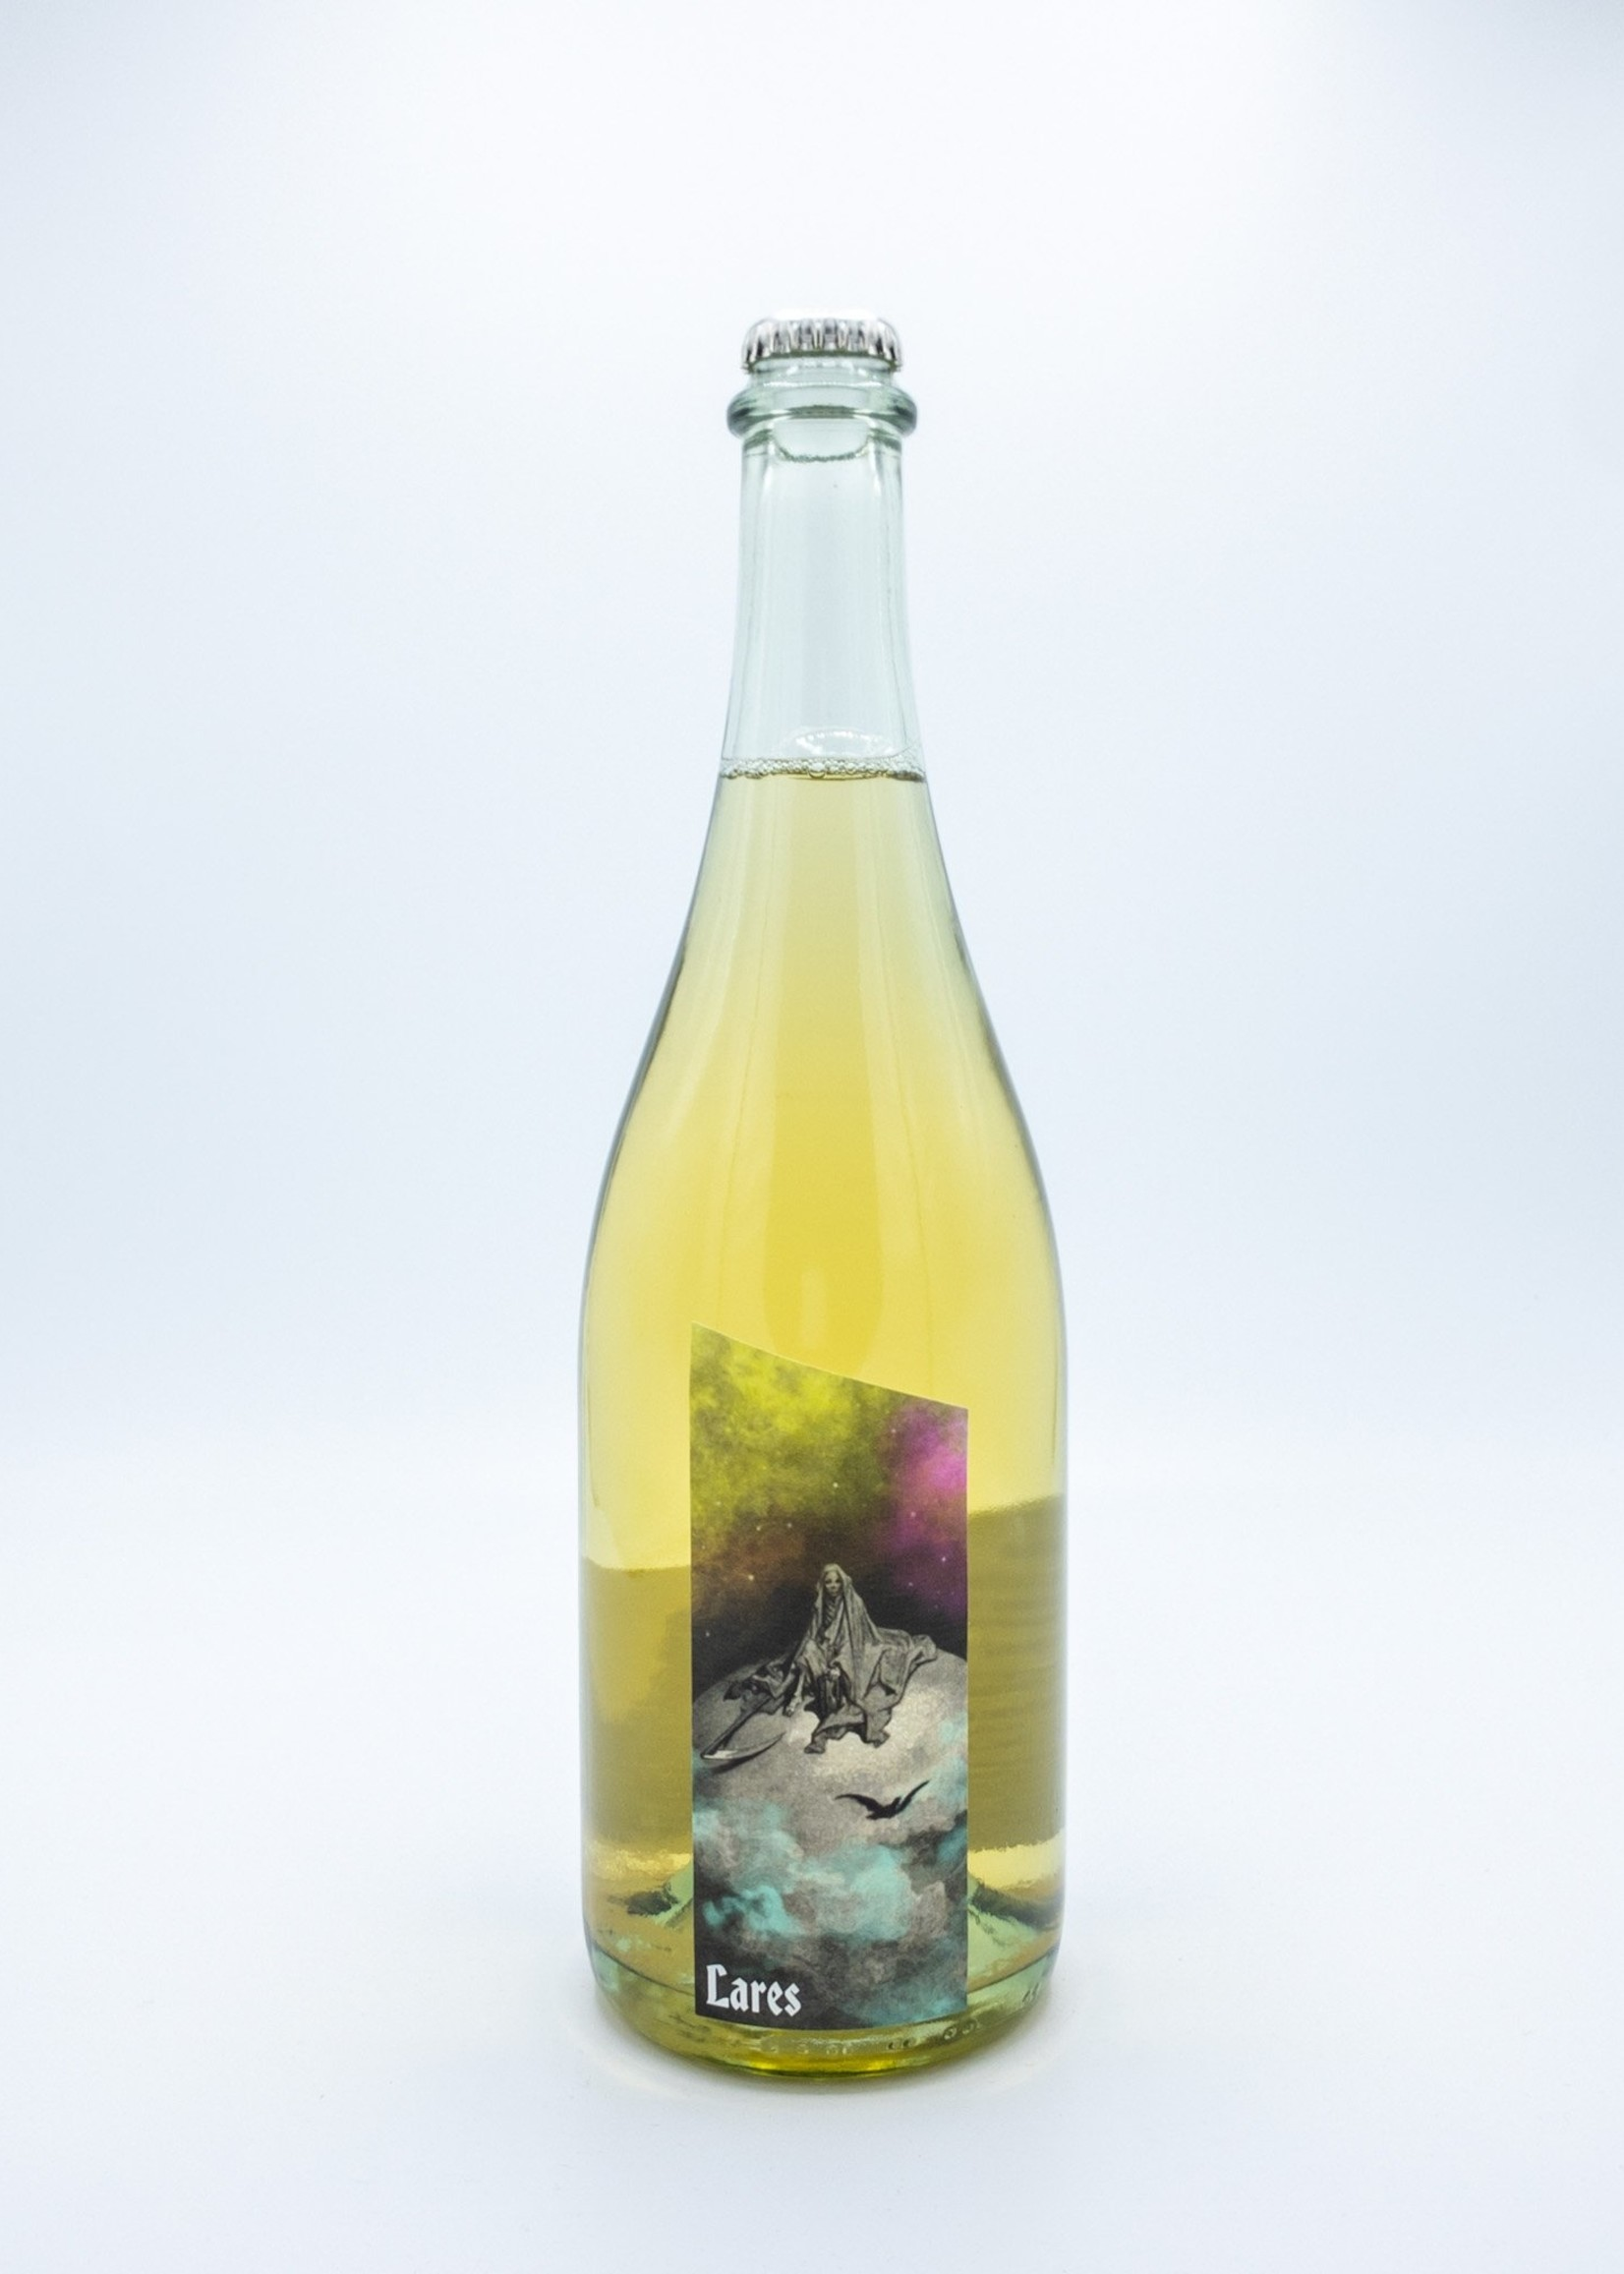 Statera Lares Sparkling Wine, Pinot Gris/Riesling/Apples, OR